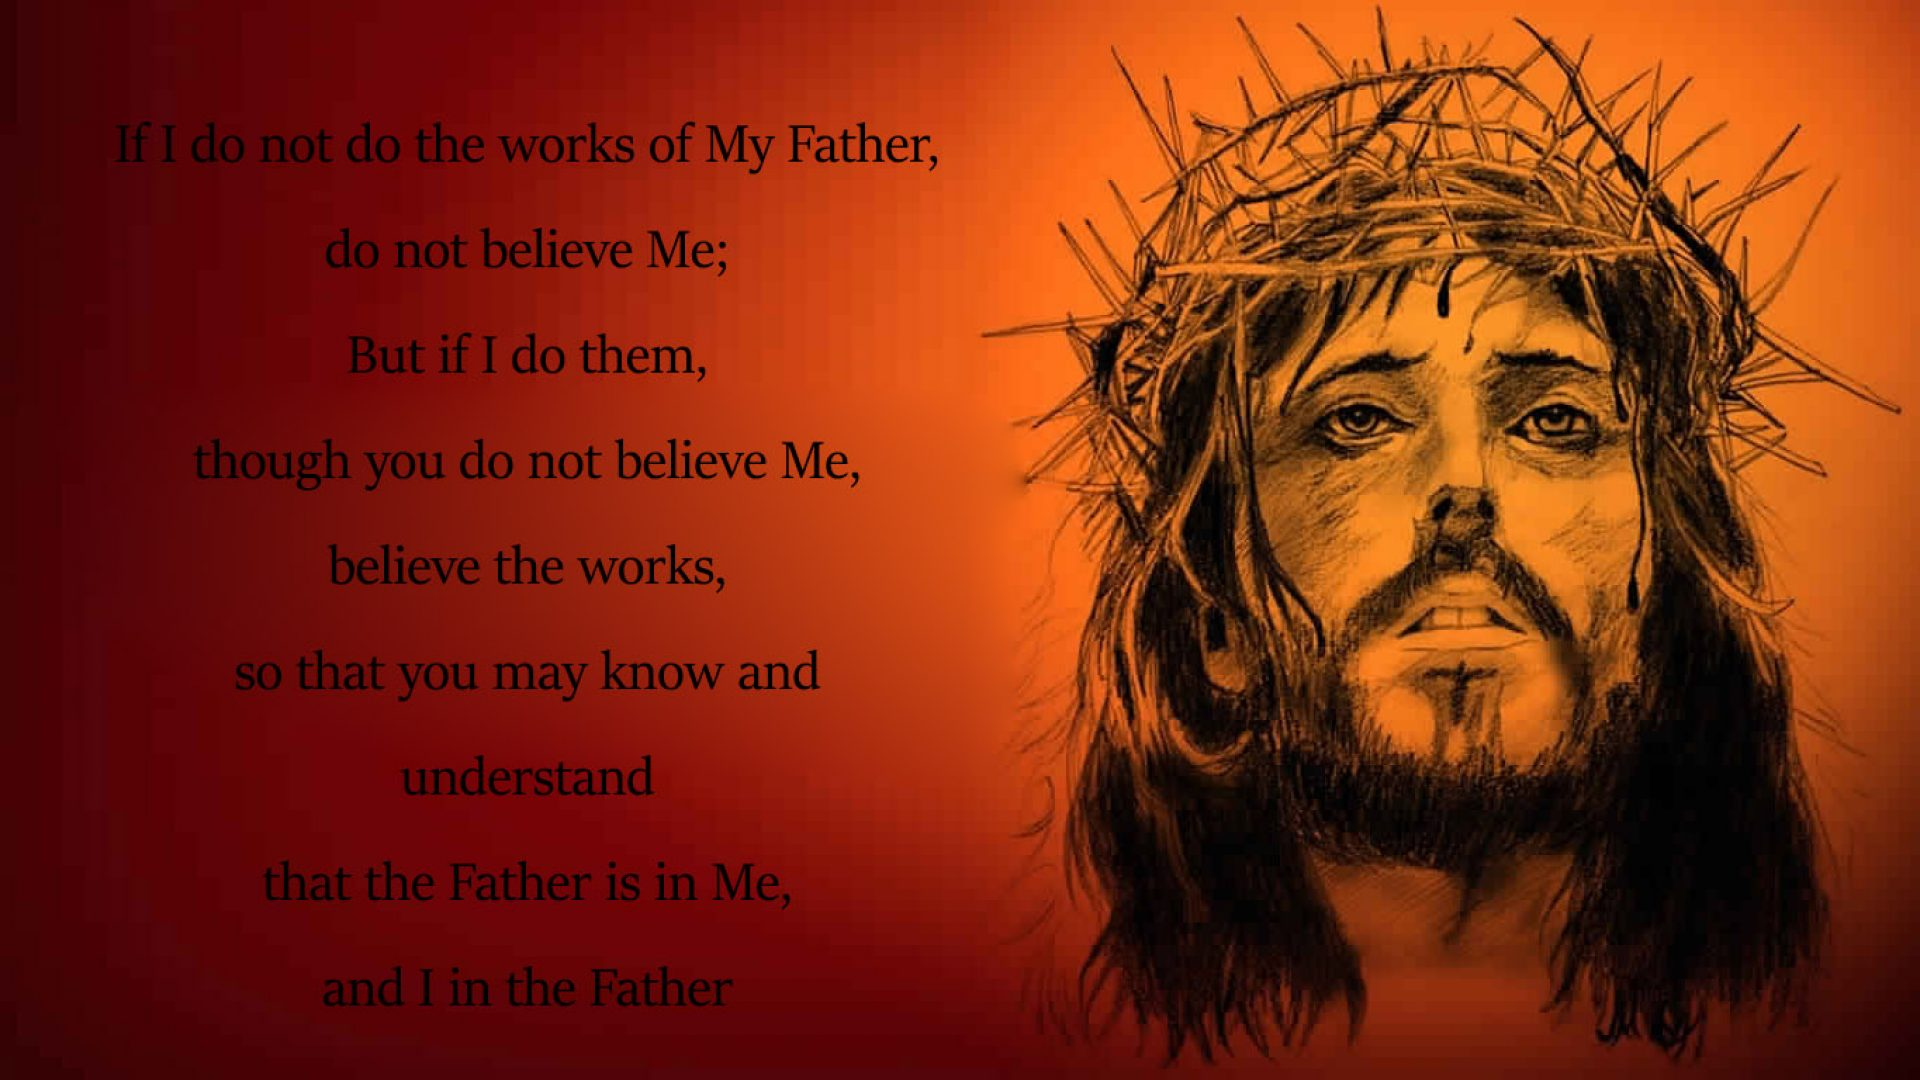 Yeshu Masih Wallpaper 3d Jesus Christ Quotes Wishes Wallpaper Hd Free Download